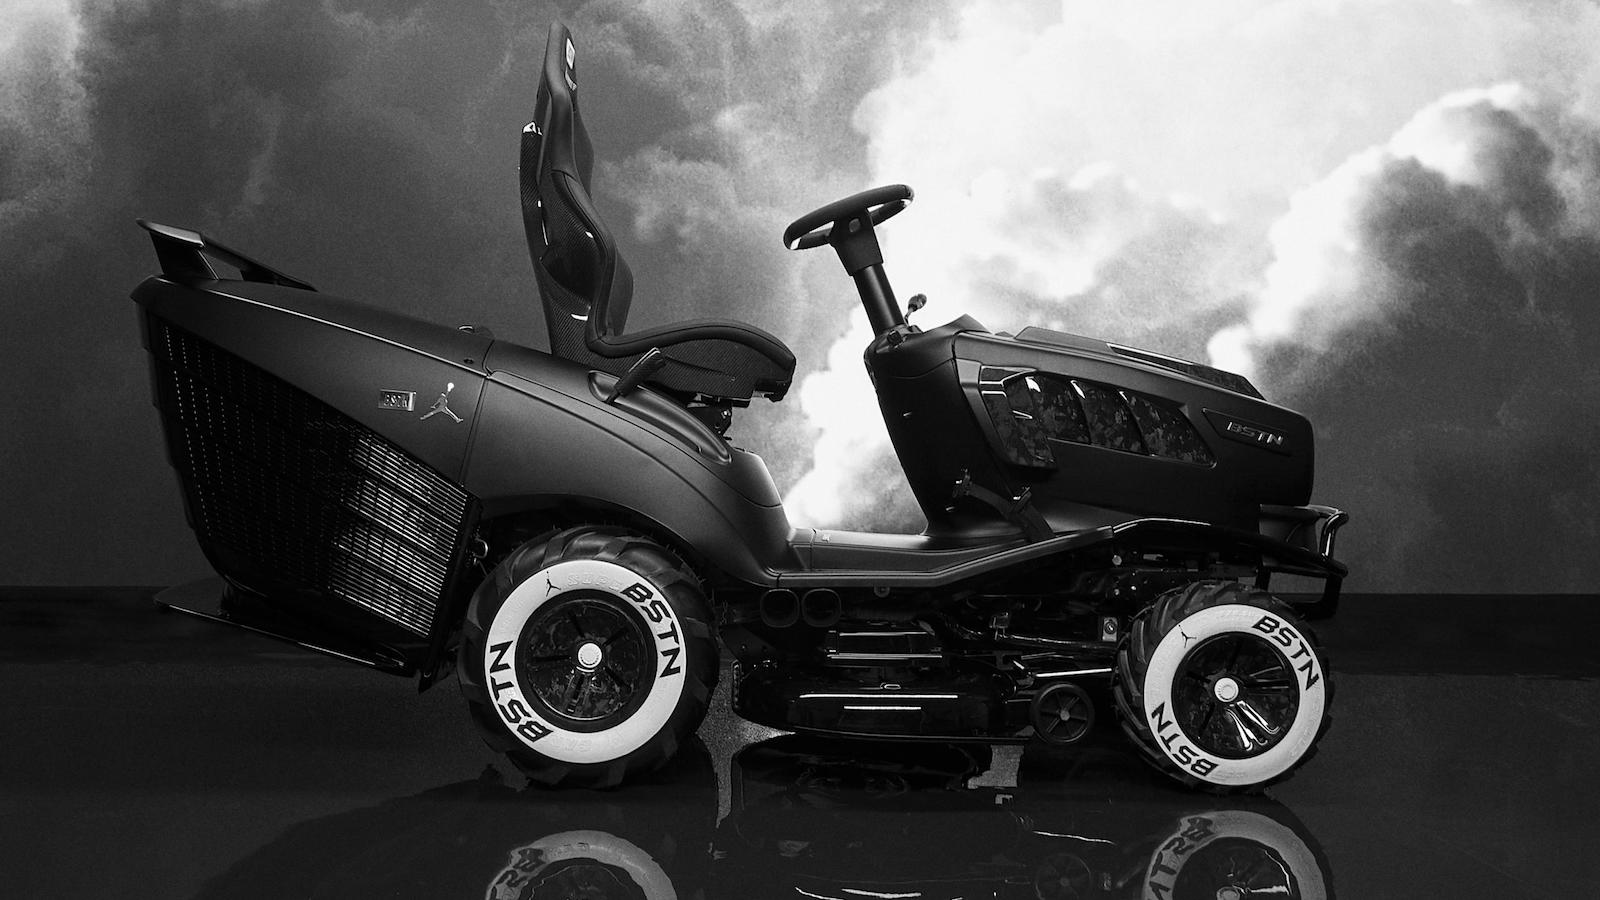 MANSORY BSTN GT XI luxury lawnmower pays homepage to the first Air Jordan sneakers